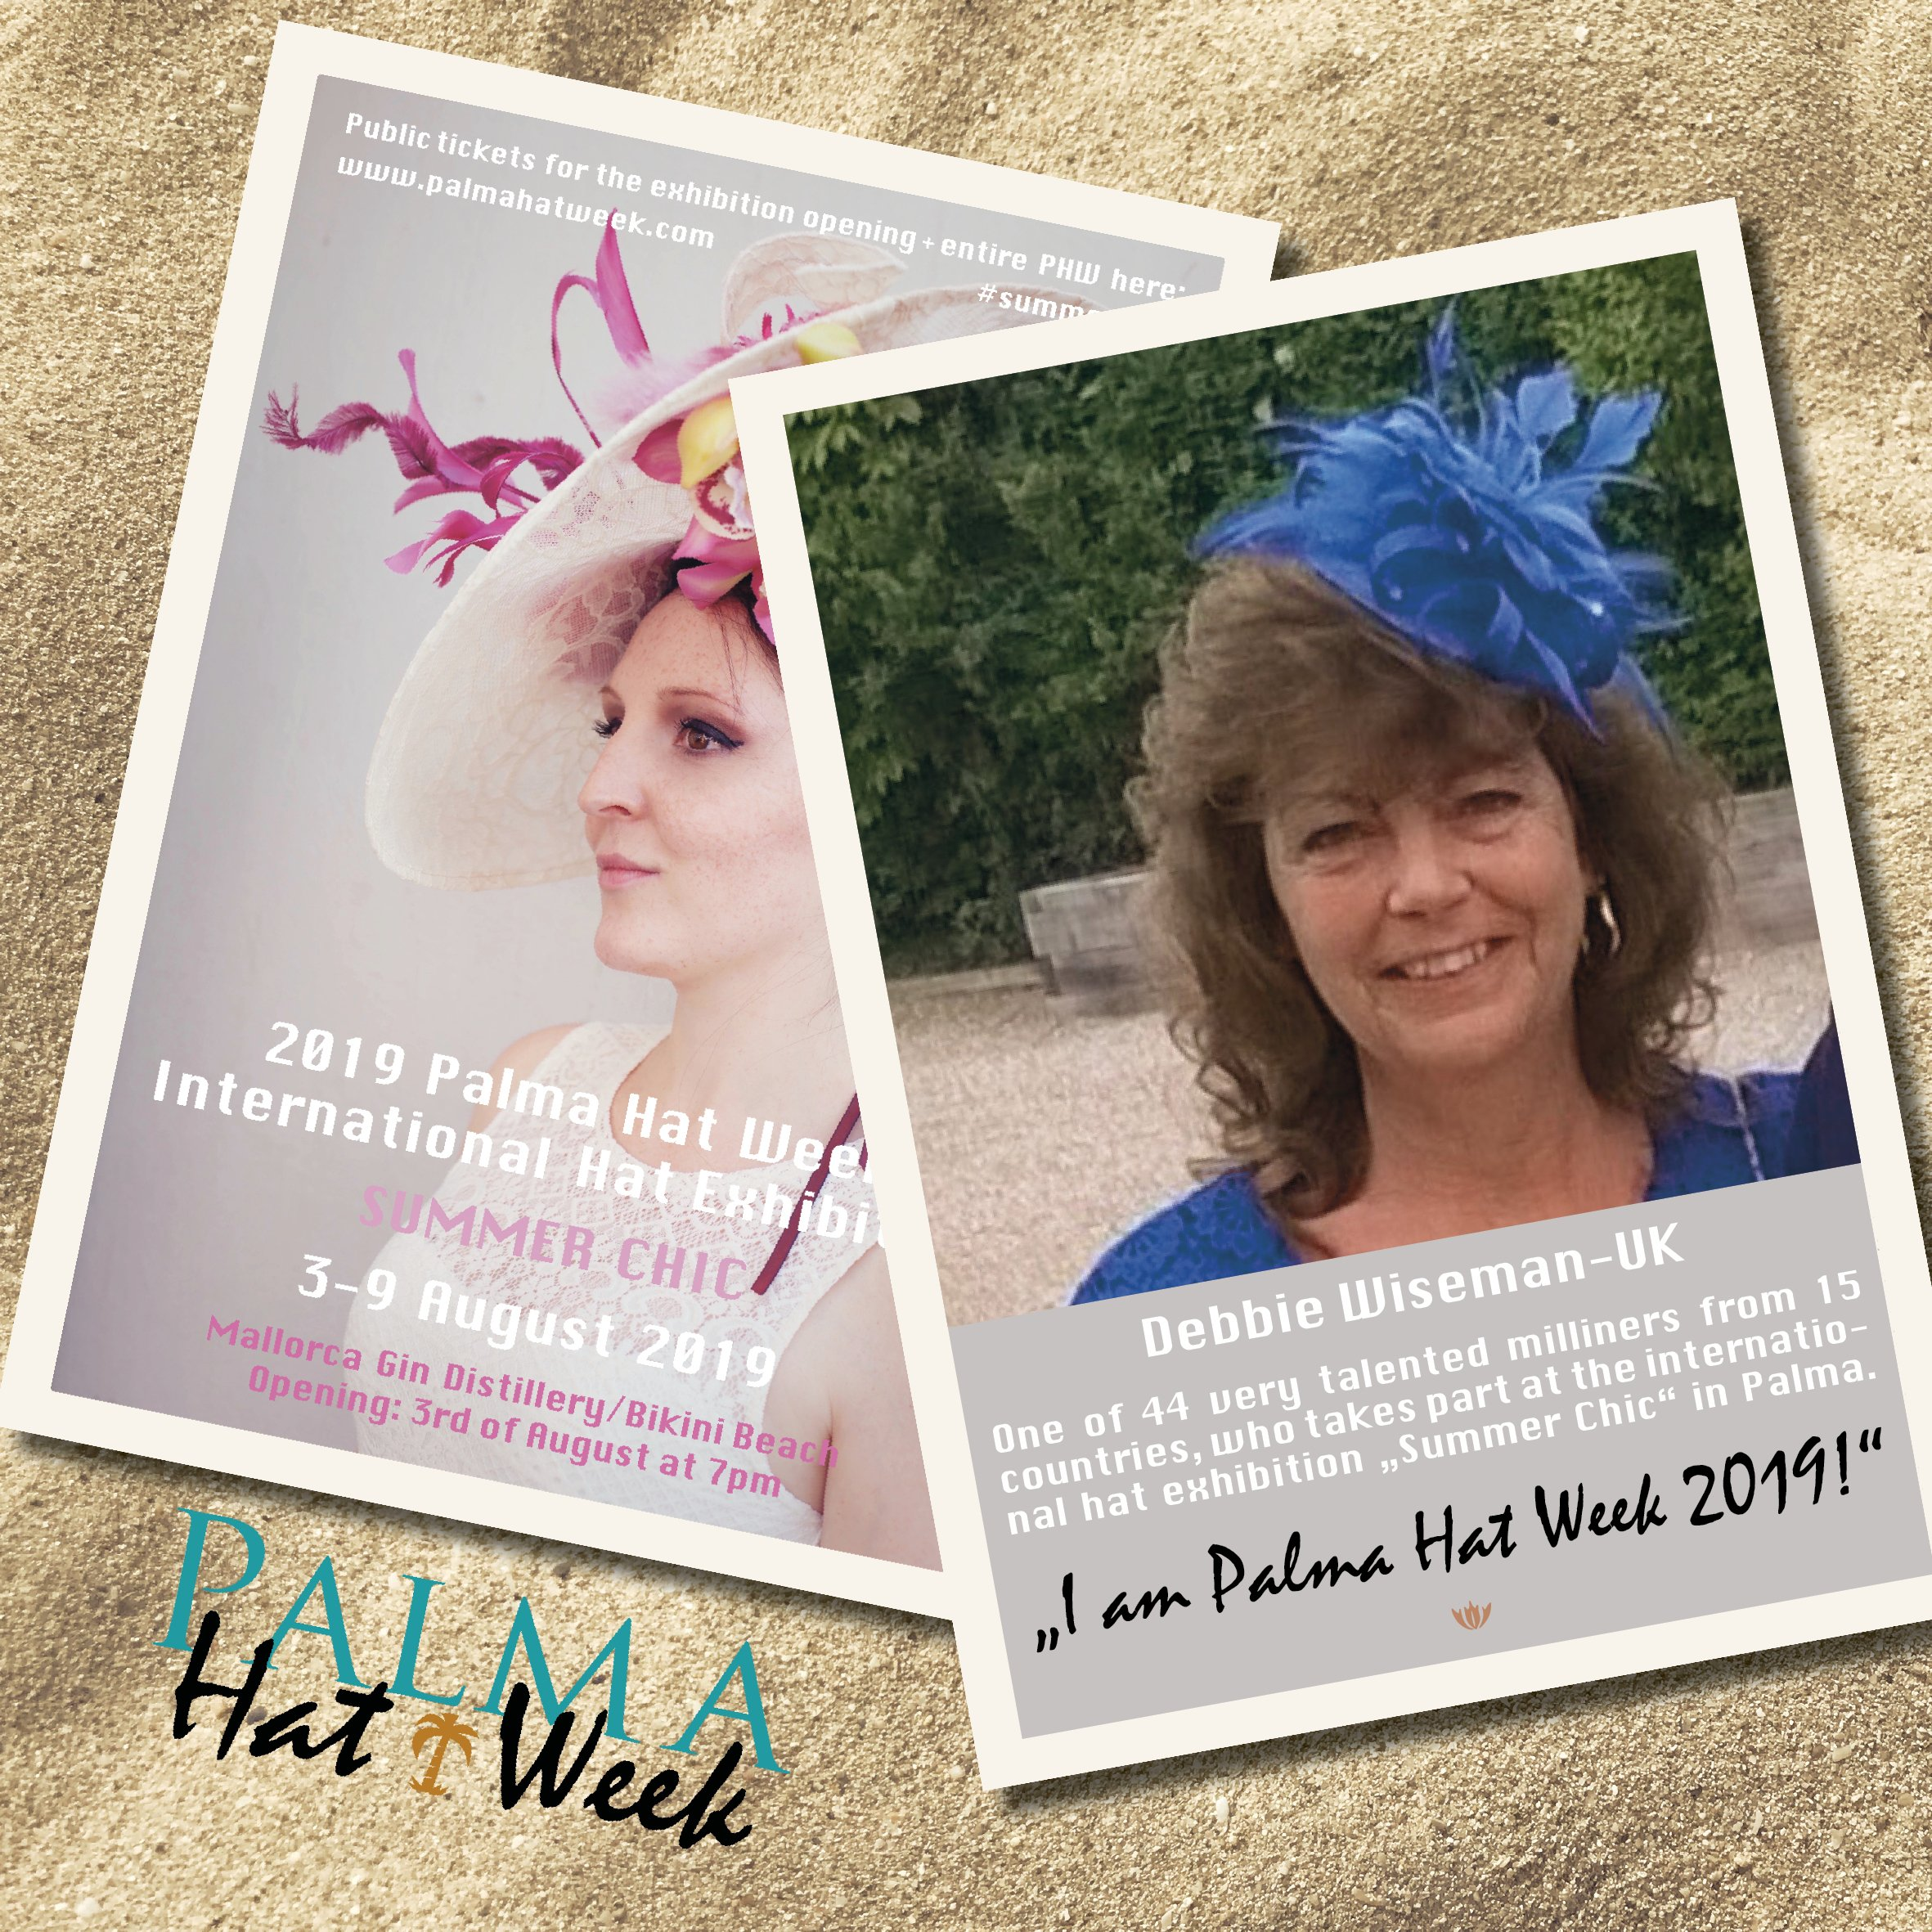 I am Palma Hatweek_Debbie Wiseman